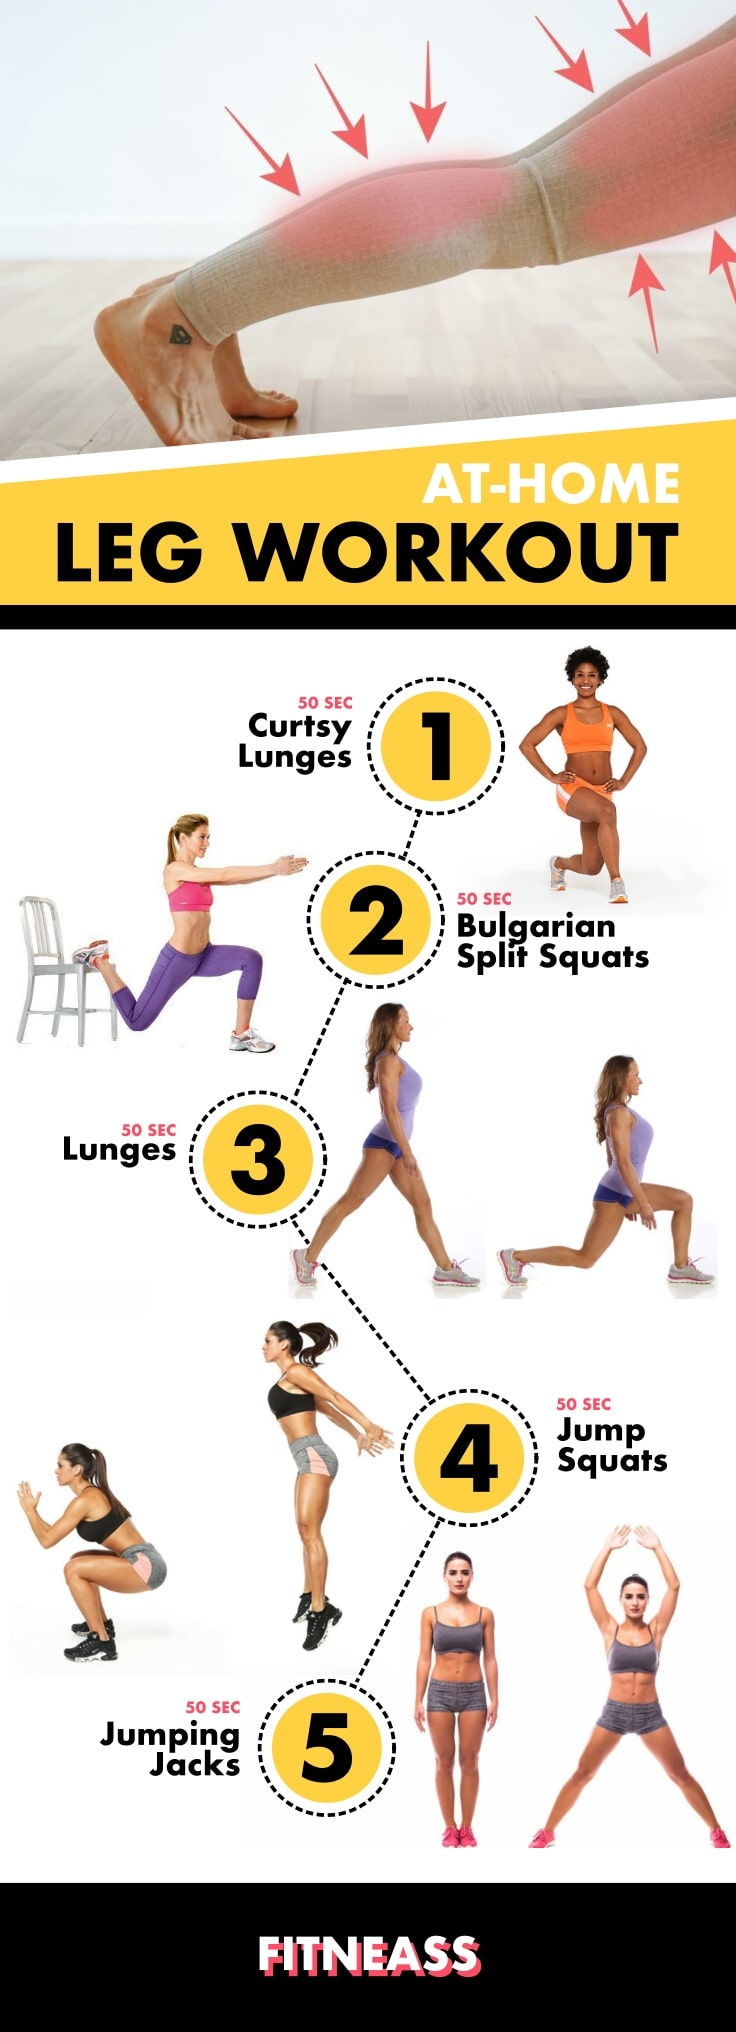 Top At-Home Leg Workouts Infographic